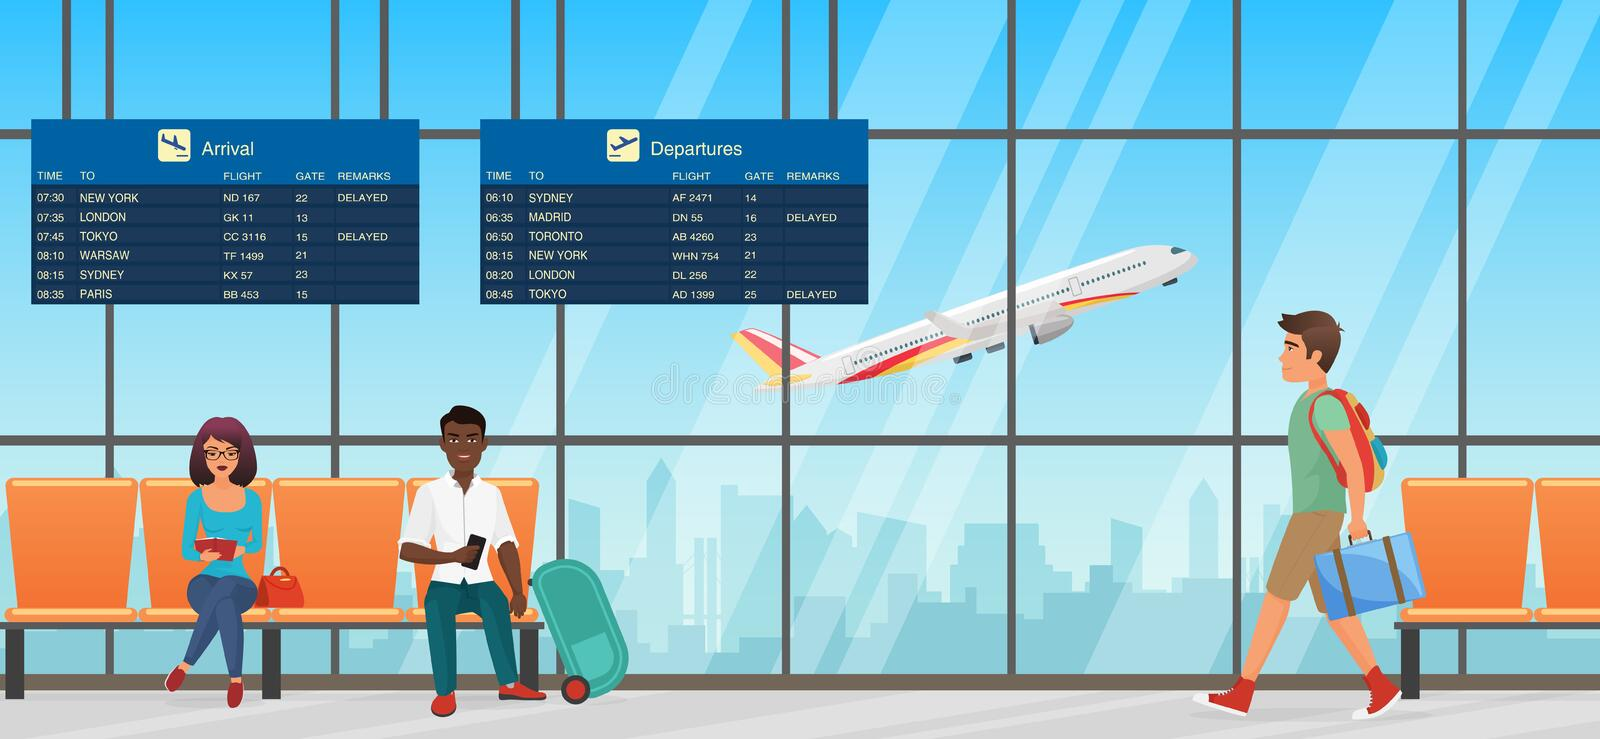 Airport waiting room. Departure lounge with chairs, information panels and people. Terminal hall with airplanes view. Airport waiting room. Departure lounge vector illustration